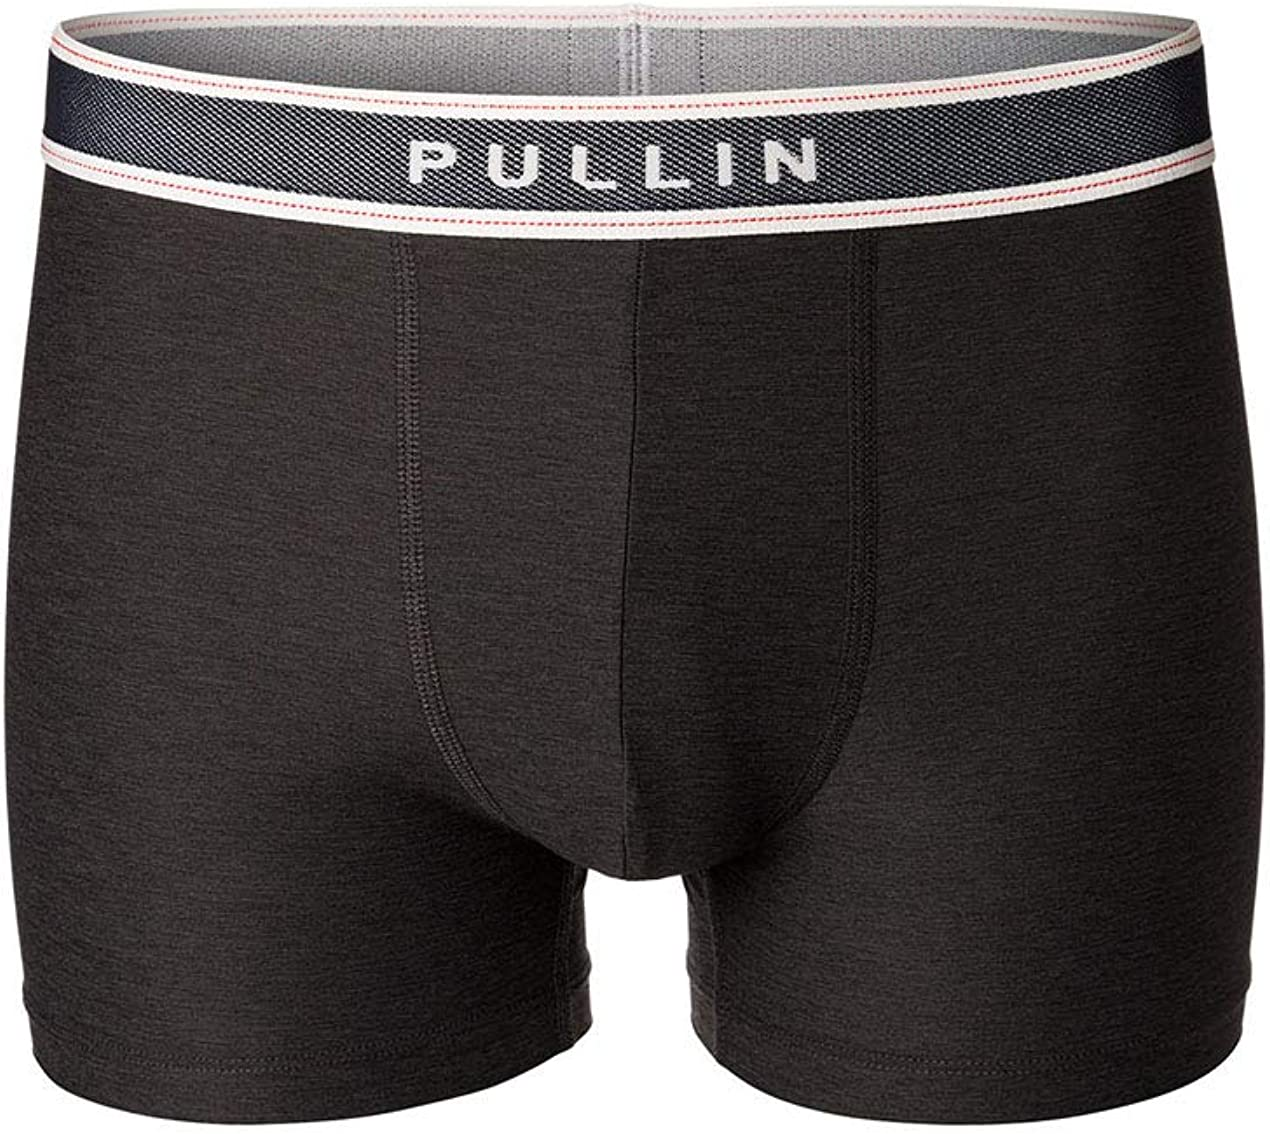 Pull-in Bóxers - para Hombre